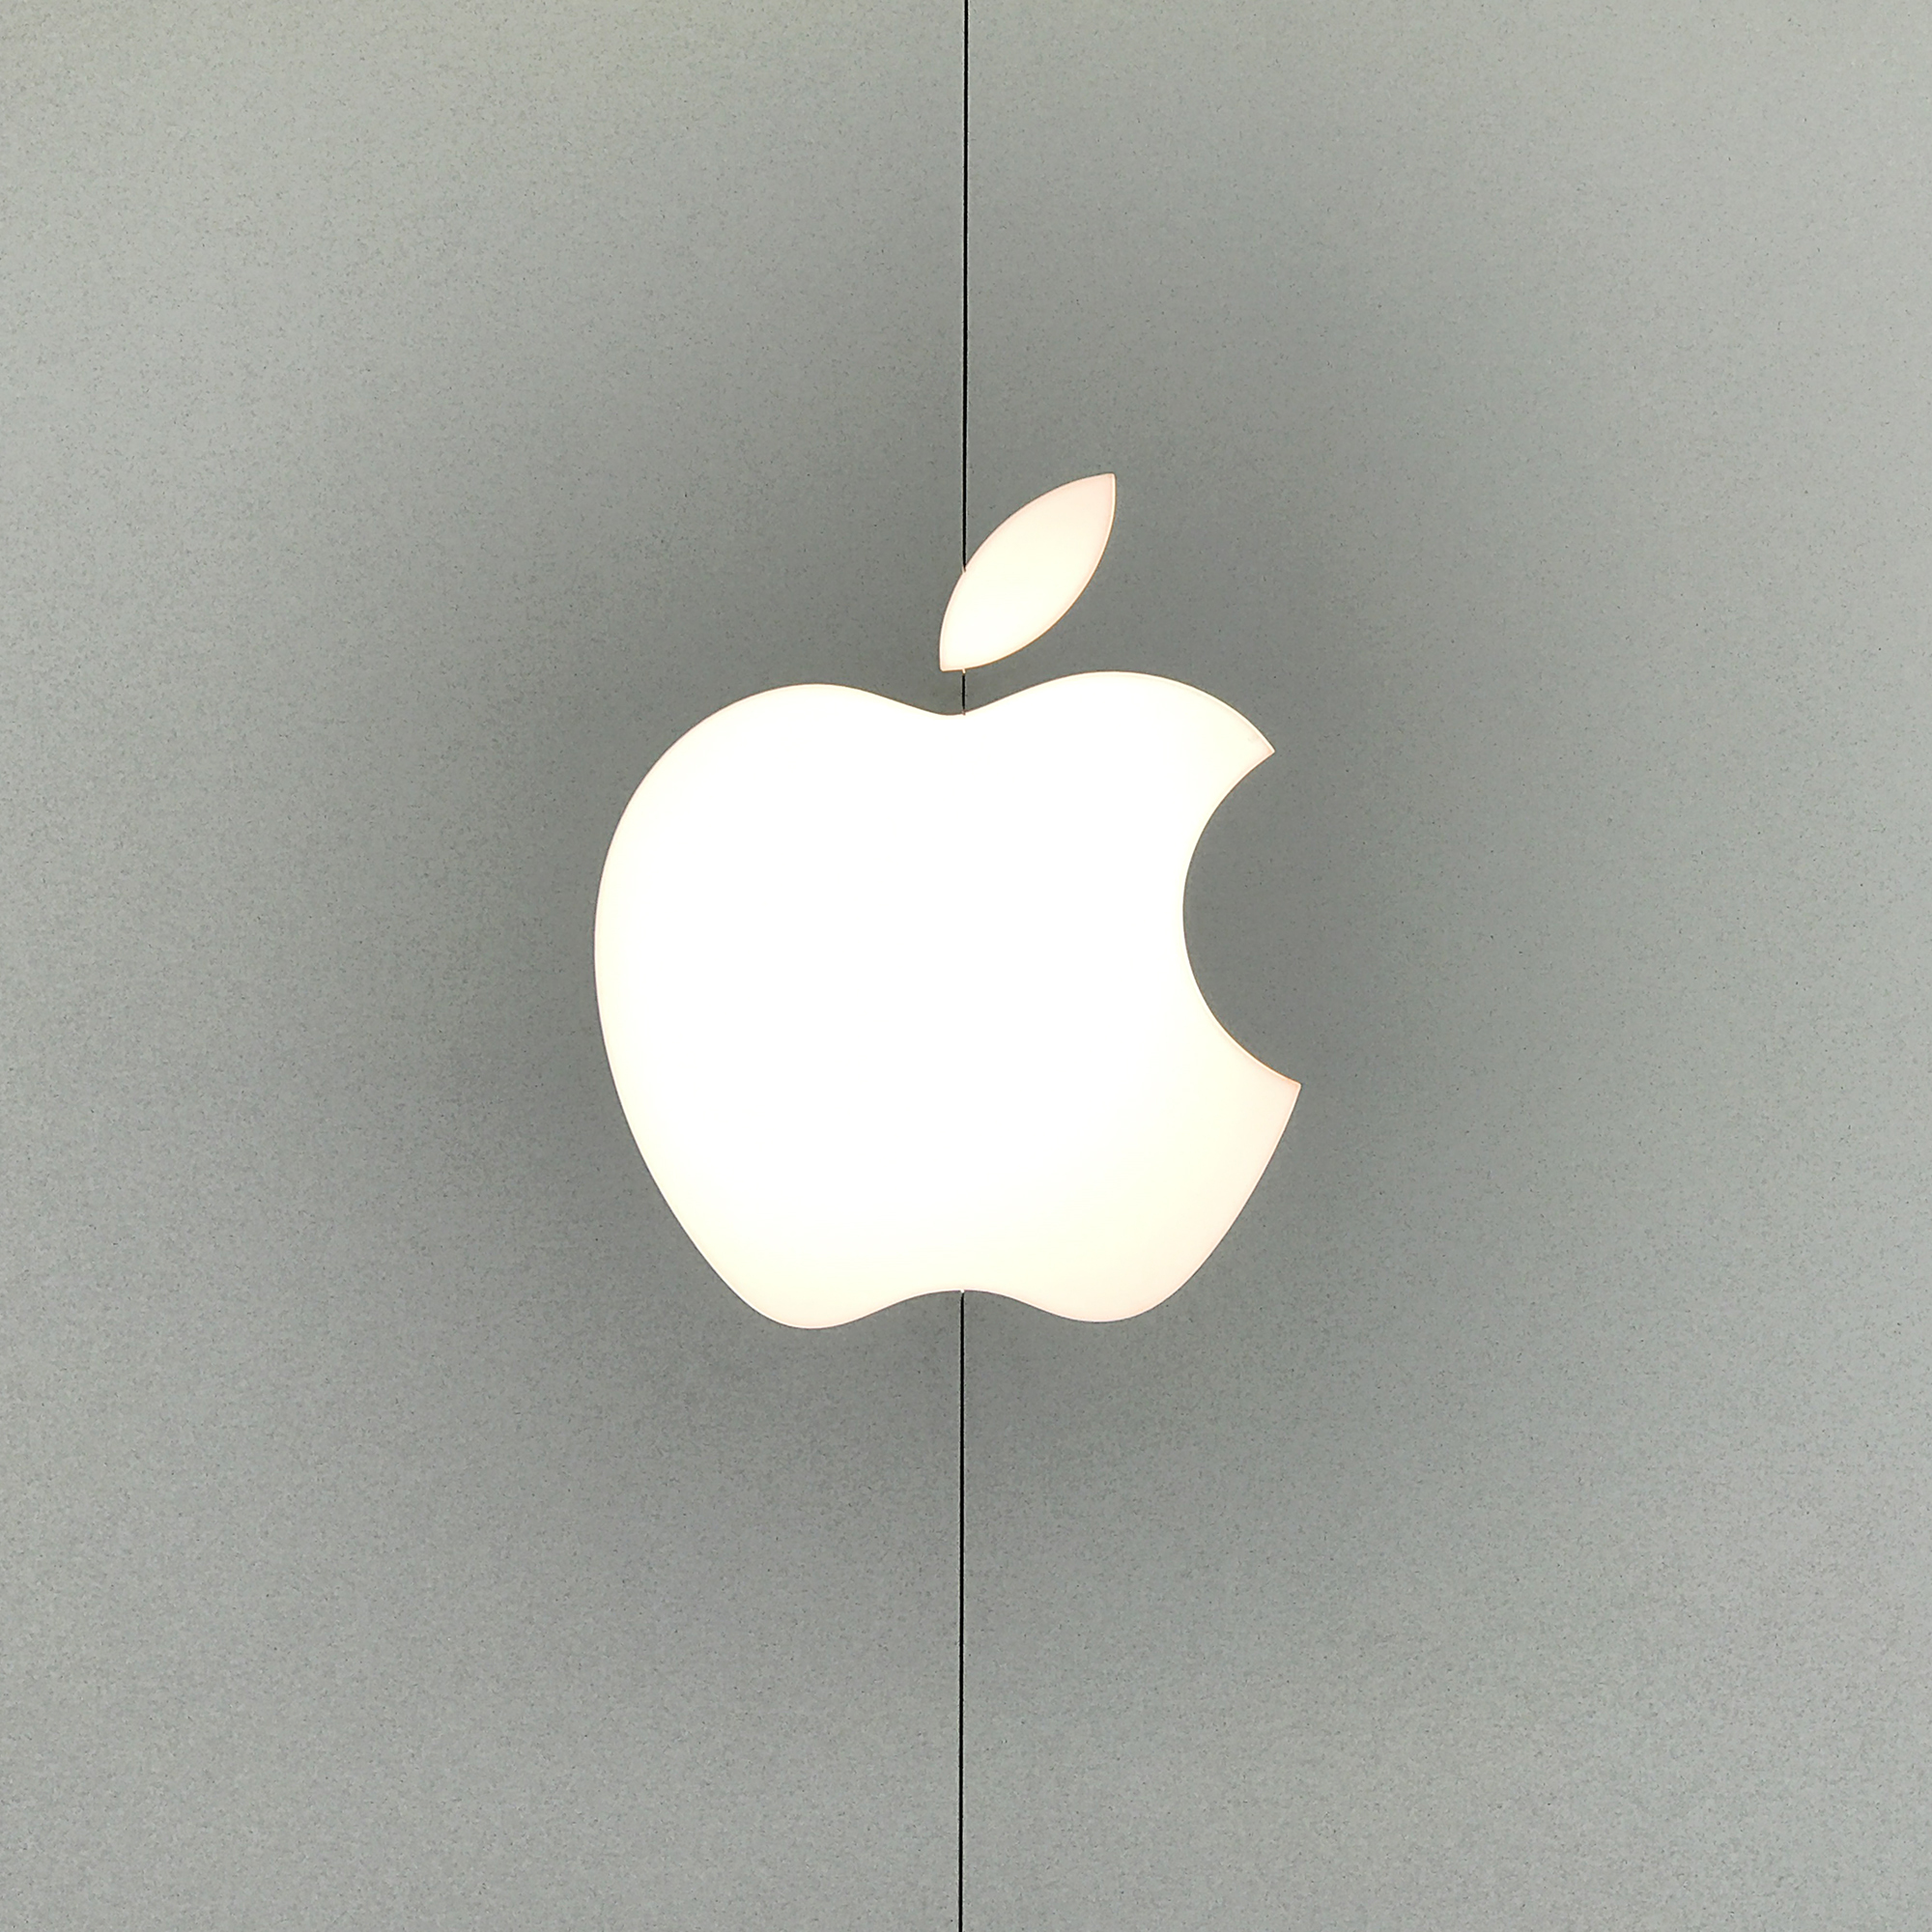 Apple Icon with grey background